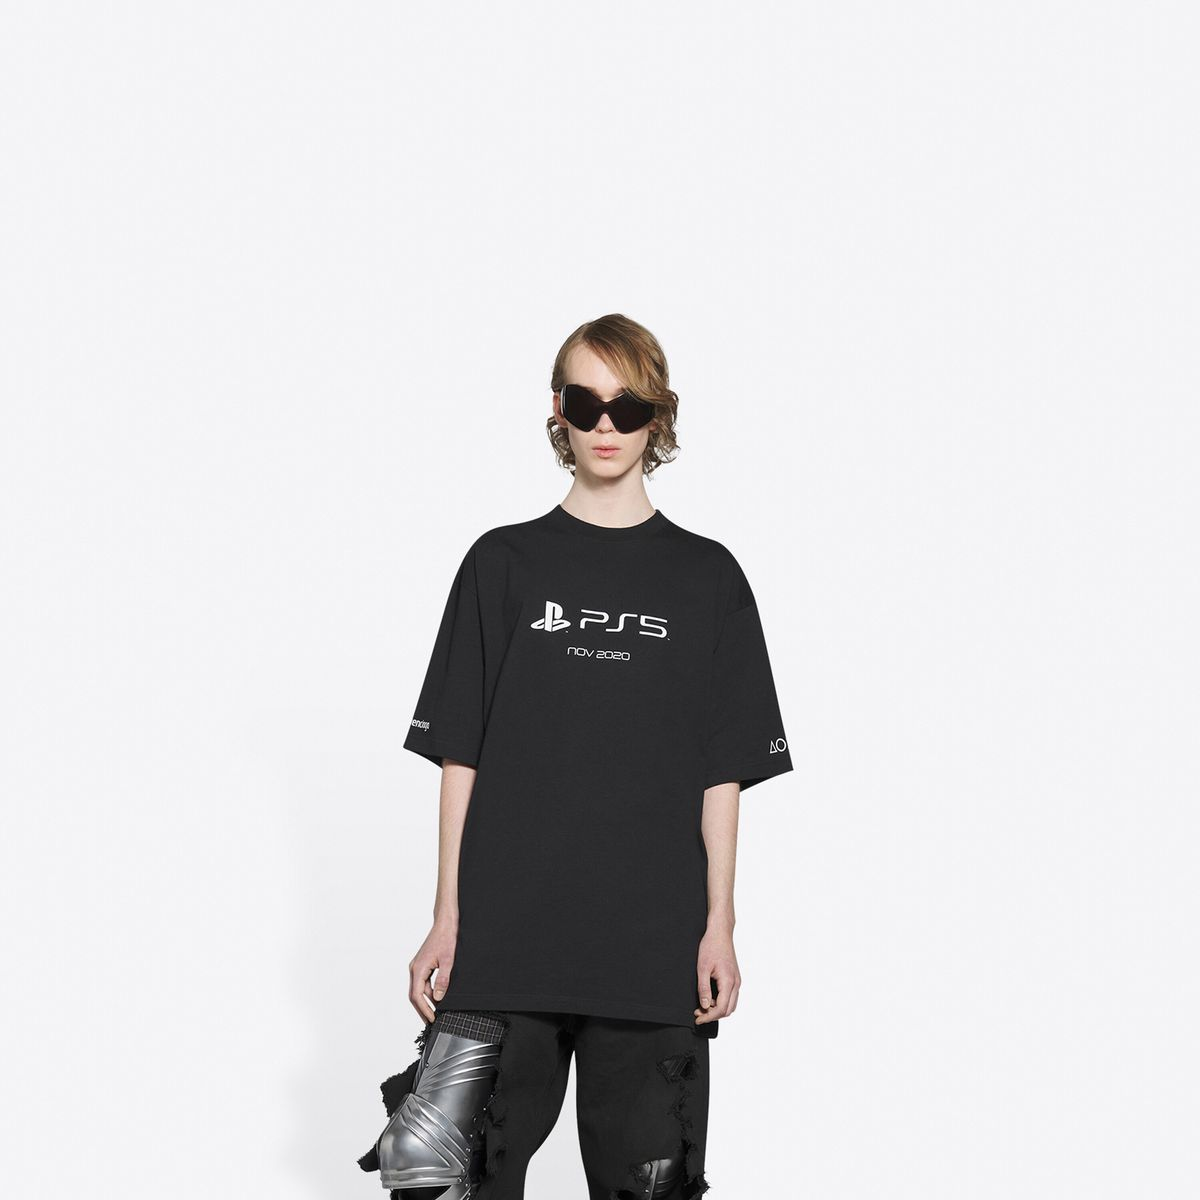 A person modeling a very expensive black PS5 T-shirt